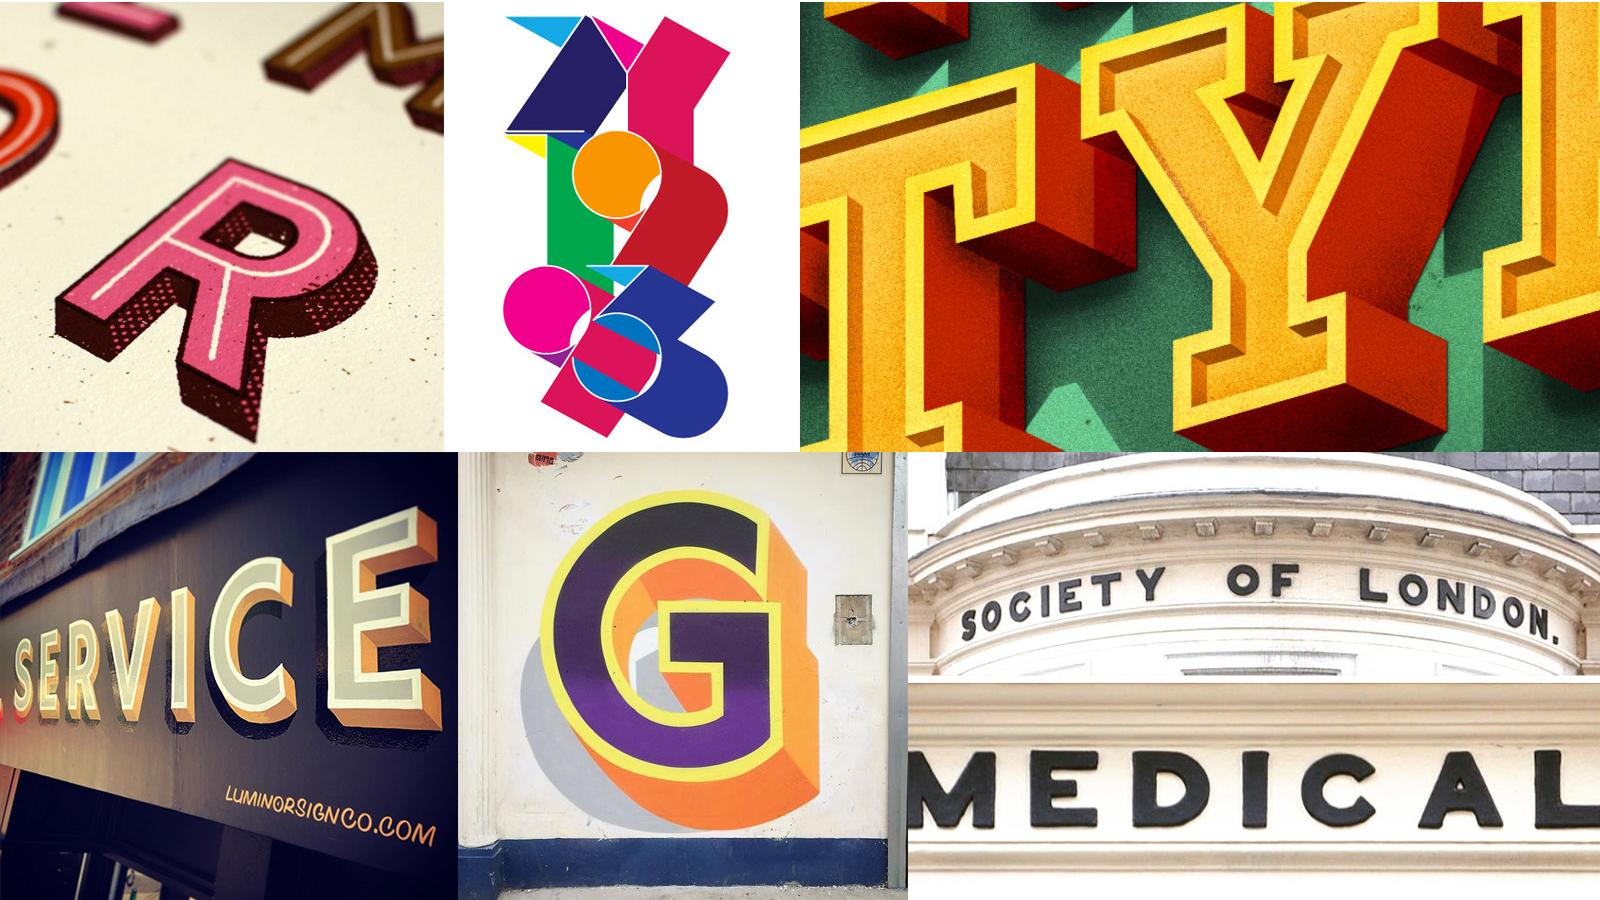 inspiration for creating type